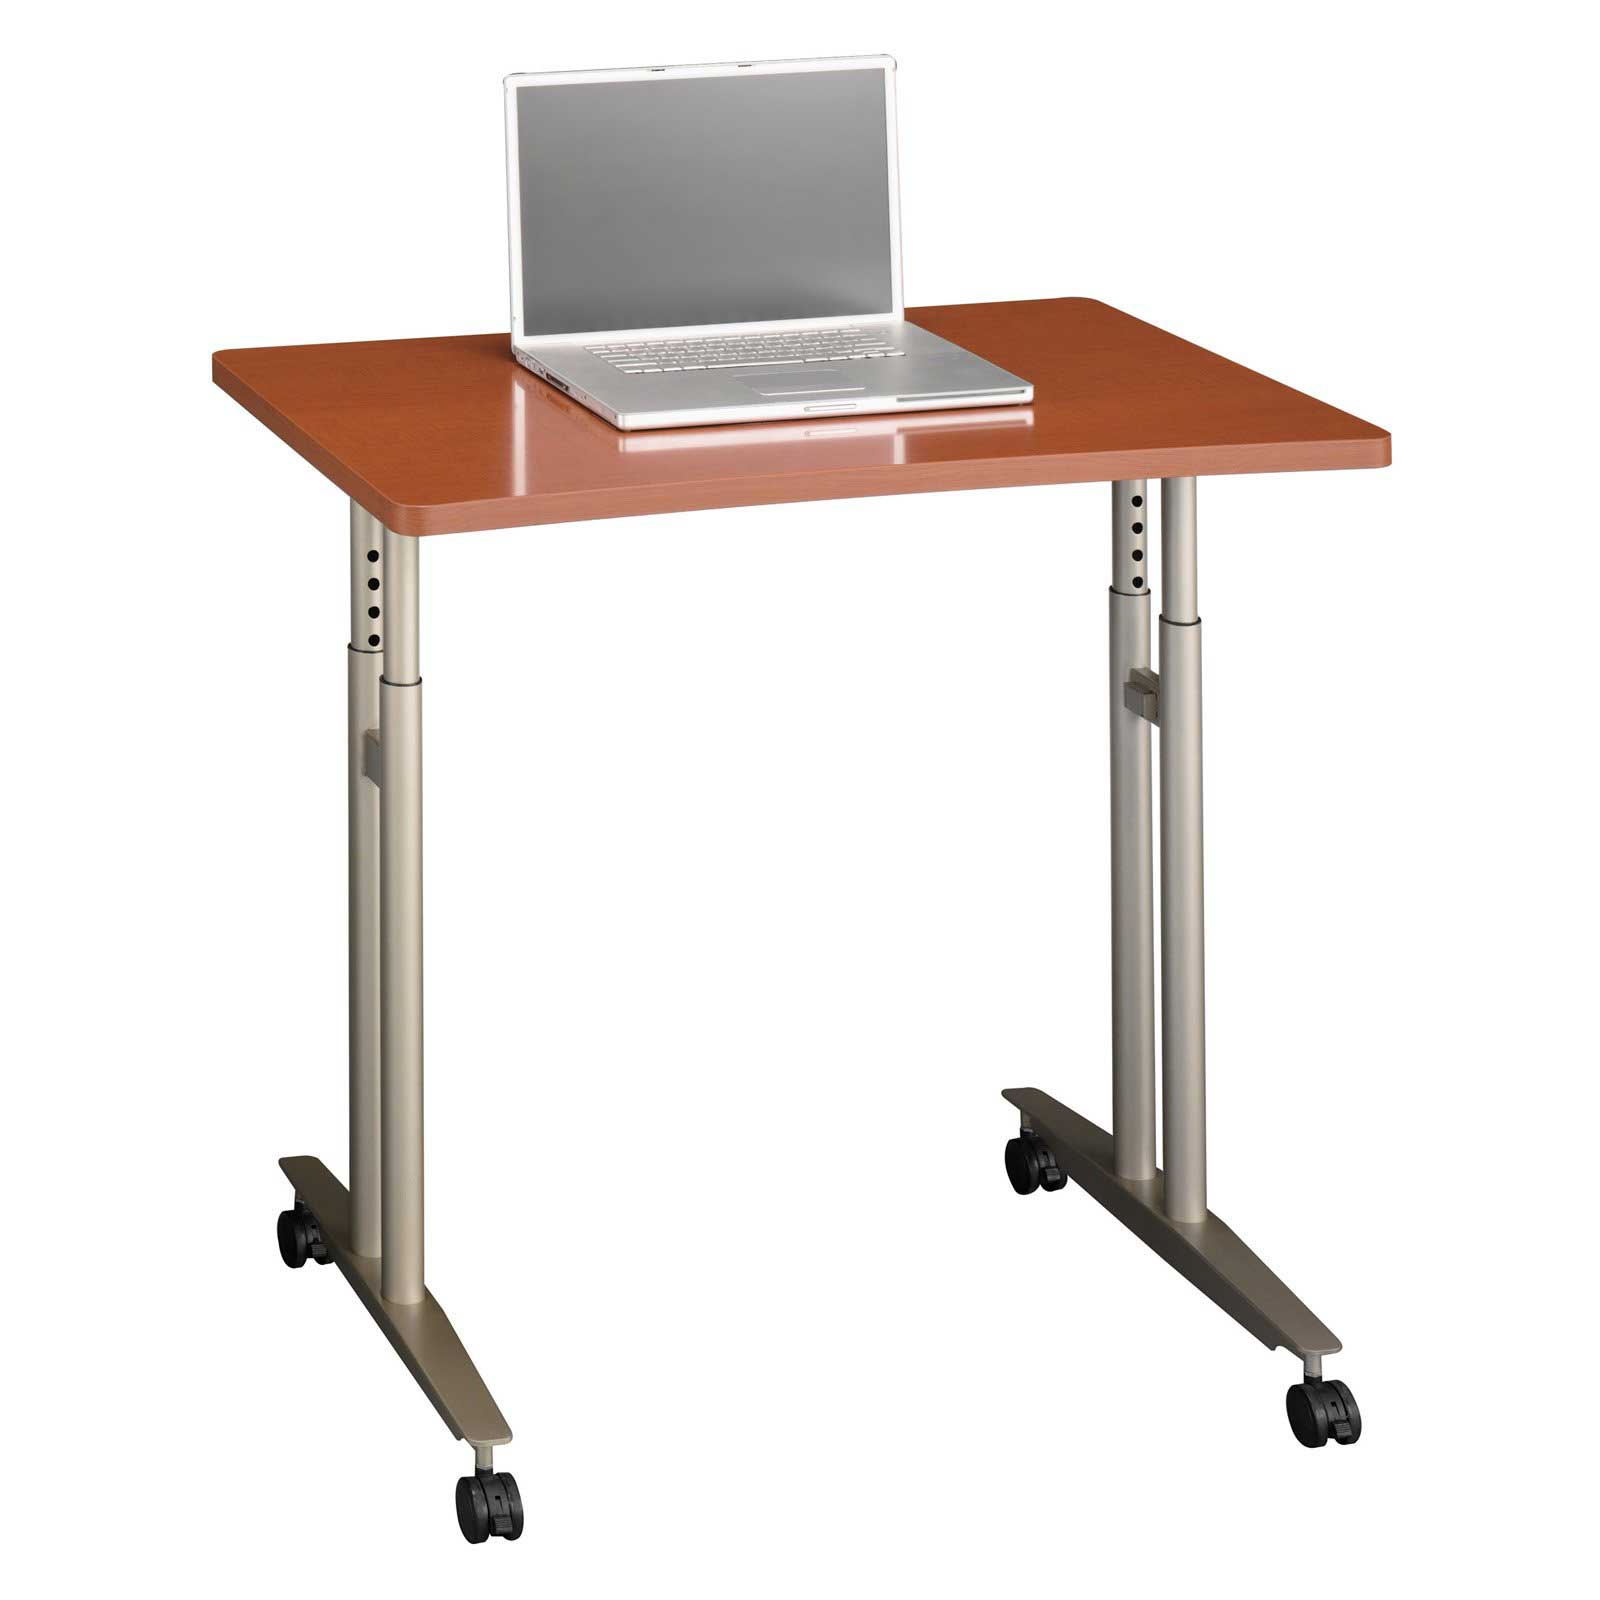 Mobile laptop desk office furniture - Mobile office desk ...